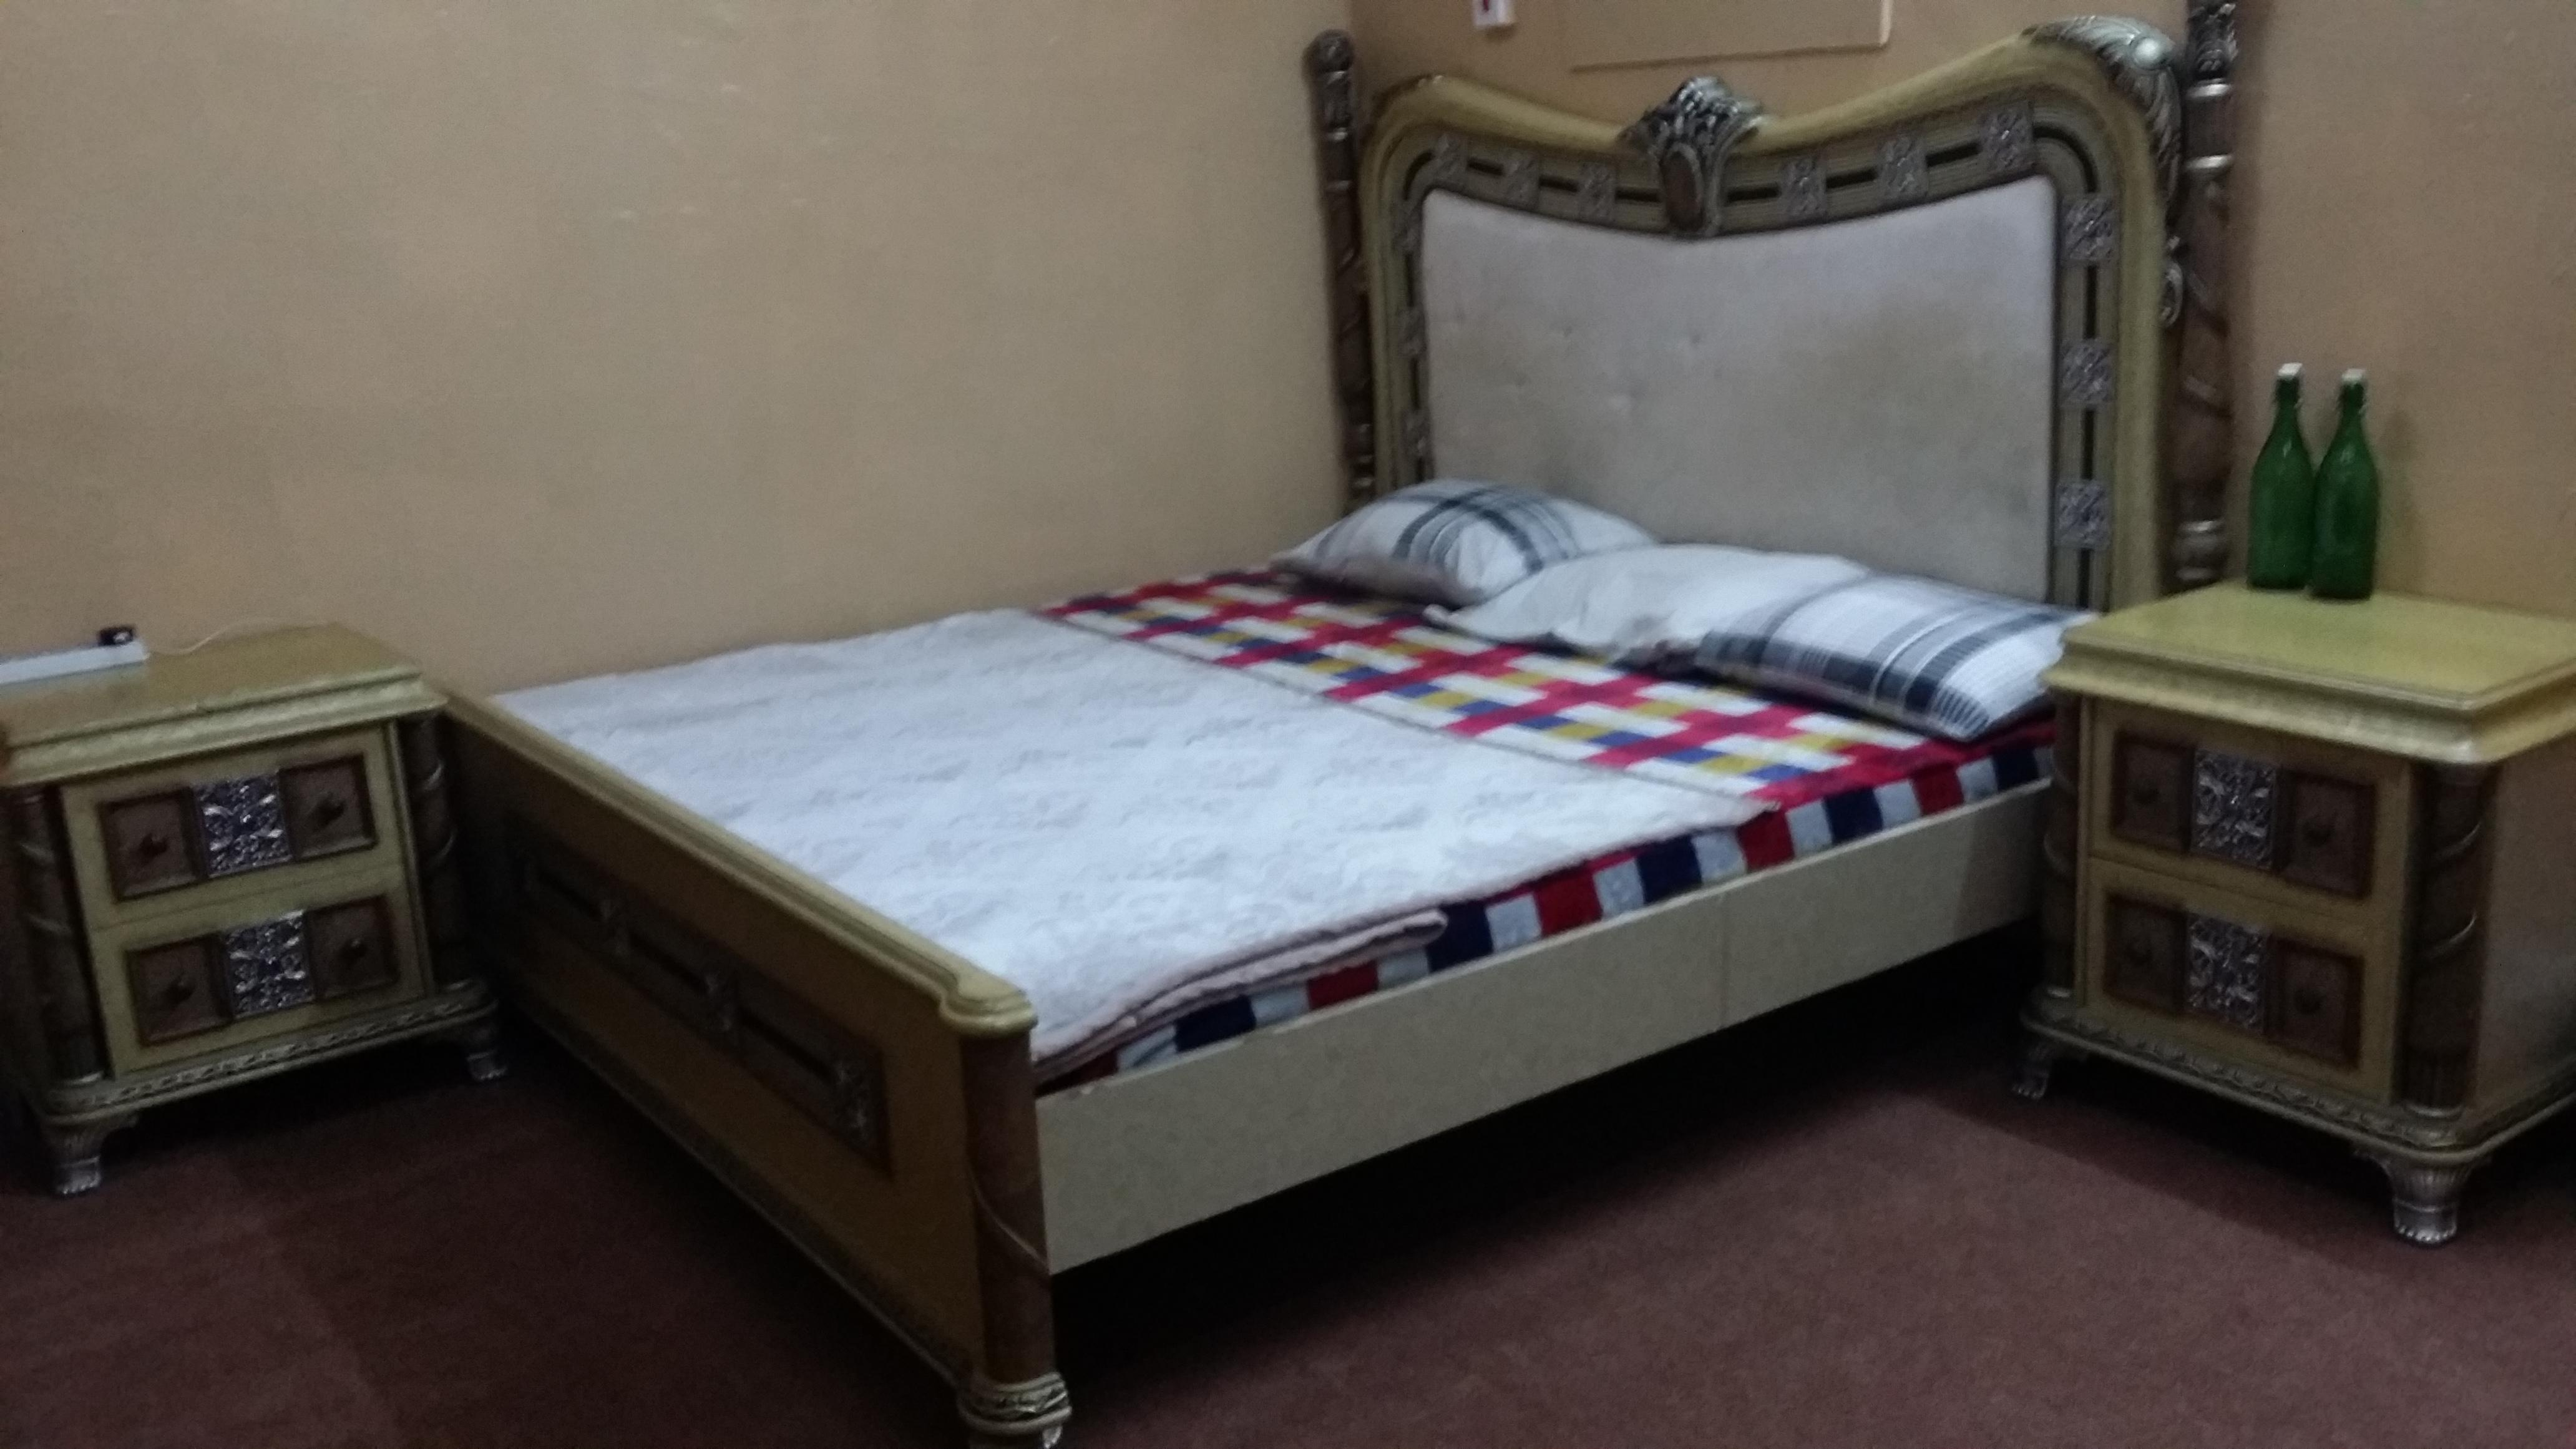 FULLY FURNISHED ROOM FOR RENT. NOW AVAILABLE,